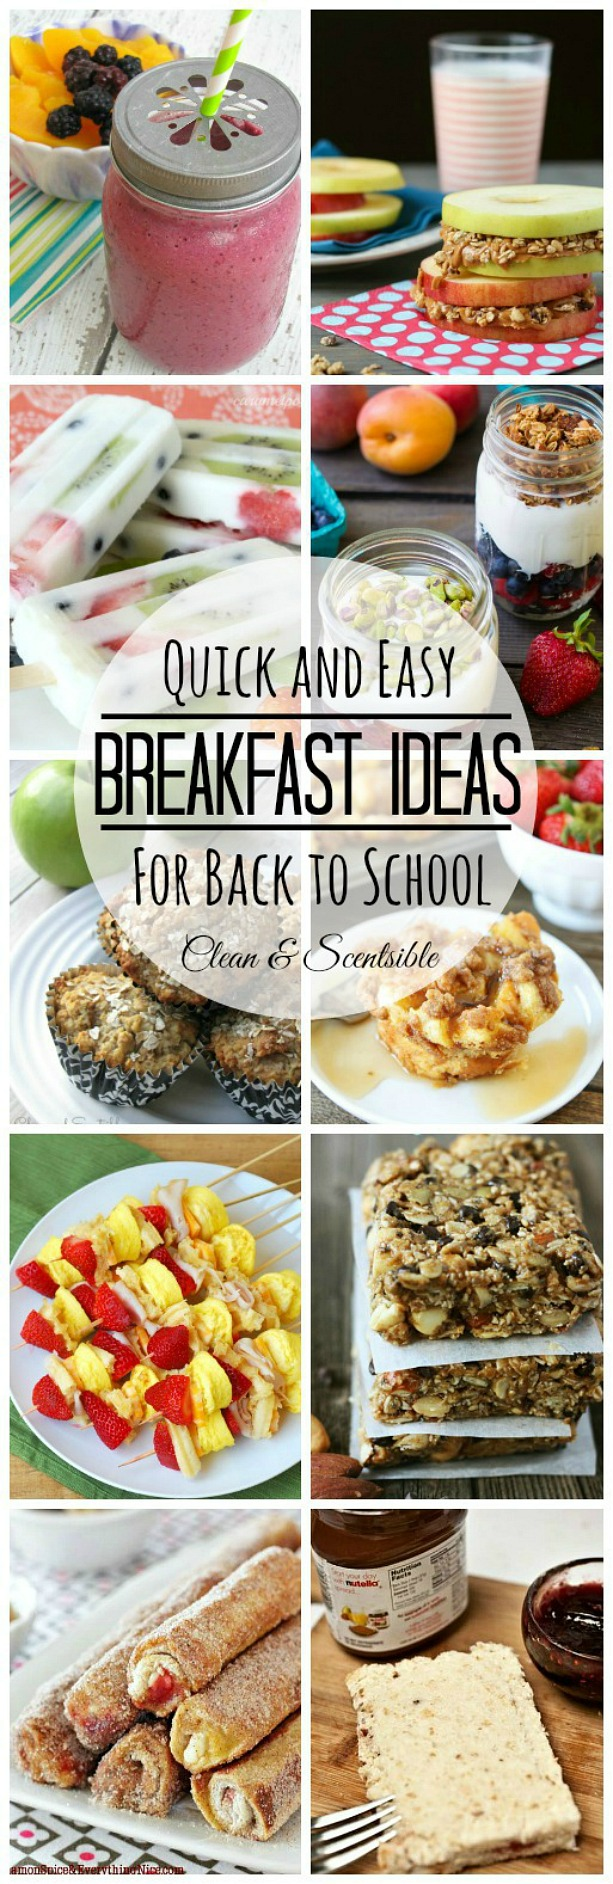 Quick and easy breakfast ideas - so much better than cereal!